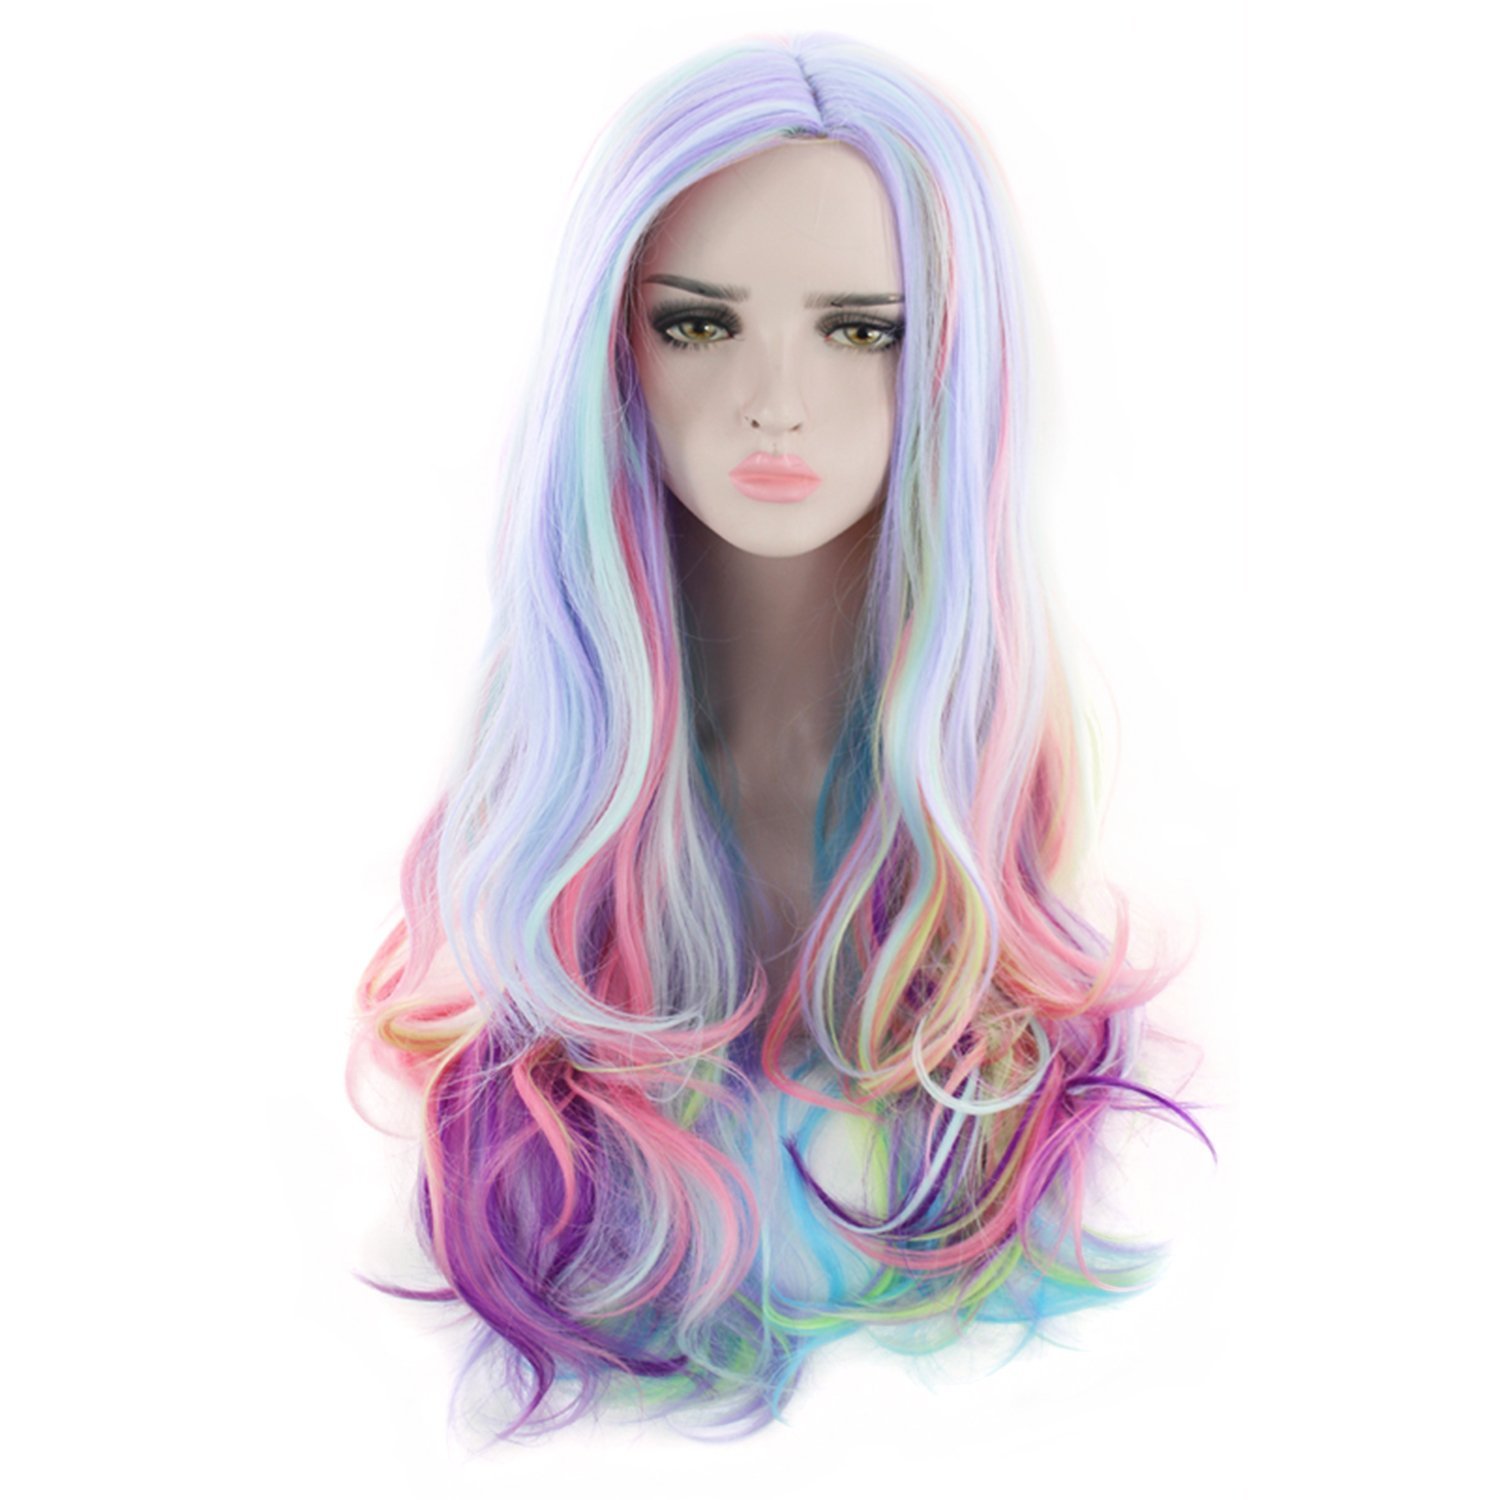 Amazon.com: AGPtEK Full Long Curly Wavy Rainbow Hair Wig, Heat Resistant Wig for Music Festival, Theme Parties, Wedding, Concerts, Dating, Cosplay & More: ...